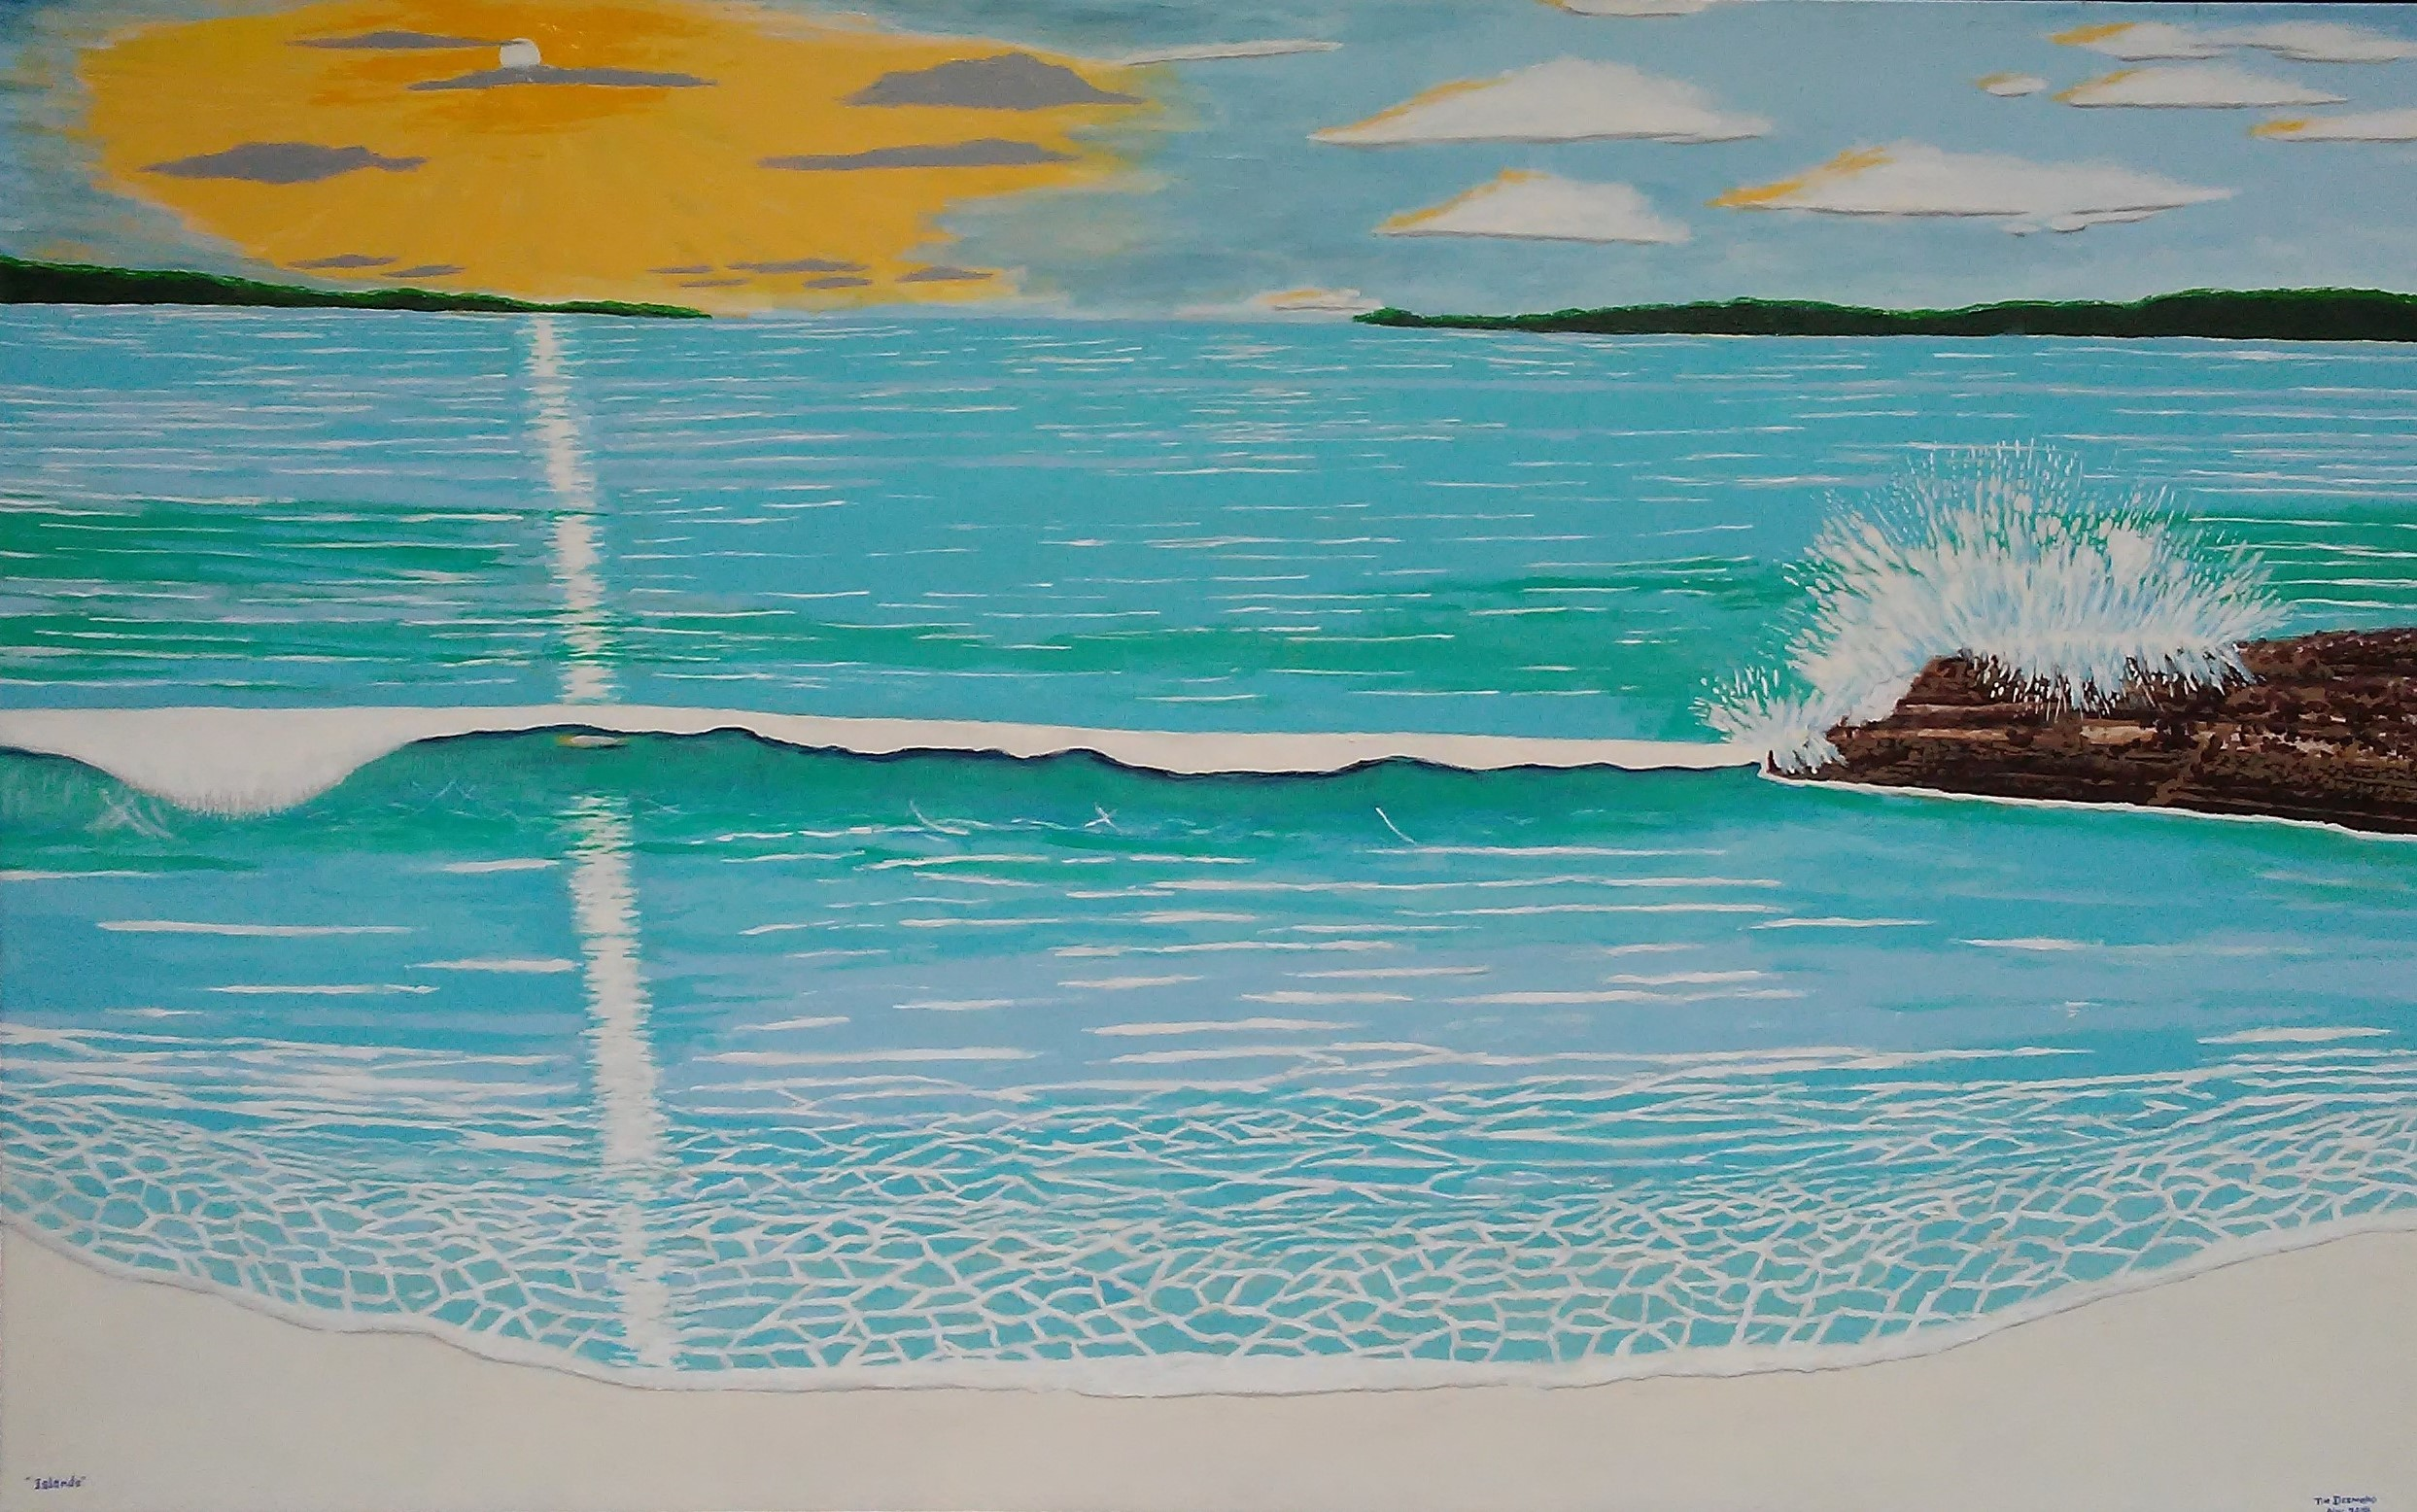 Art - by Desmond - Islands - May 22 - 2019 cropped